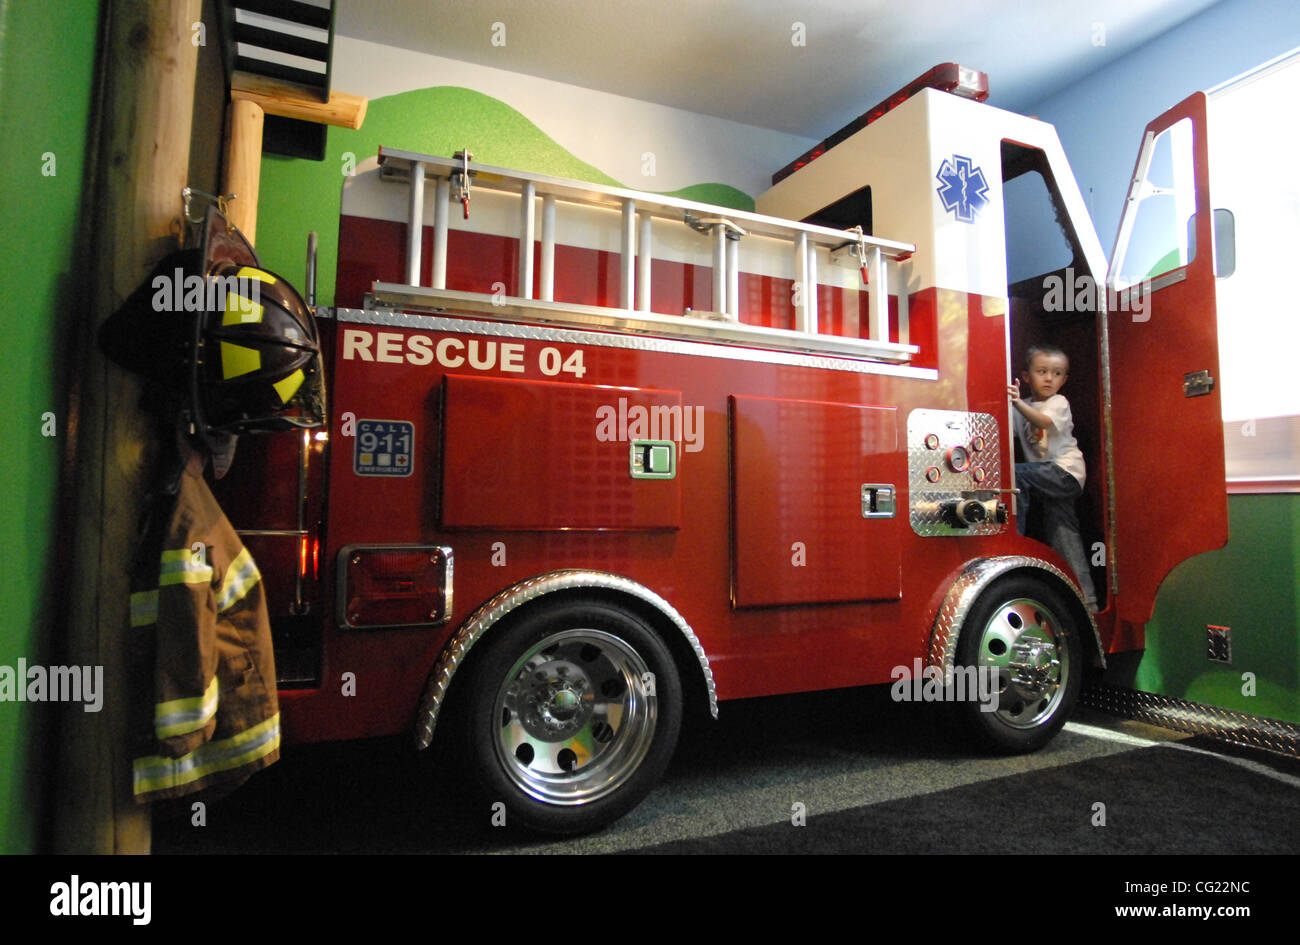 Dave matthews cq built a firetruck bed for his son trevor 5 stock photo royalty free image - Ikea fire truck bed ...